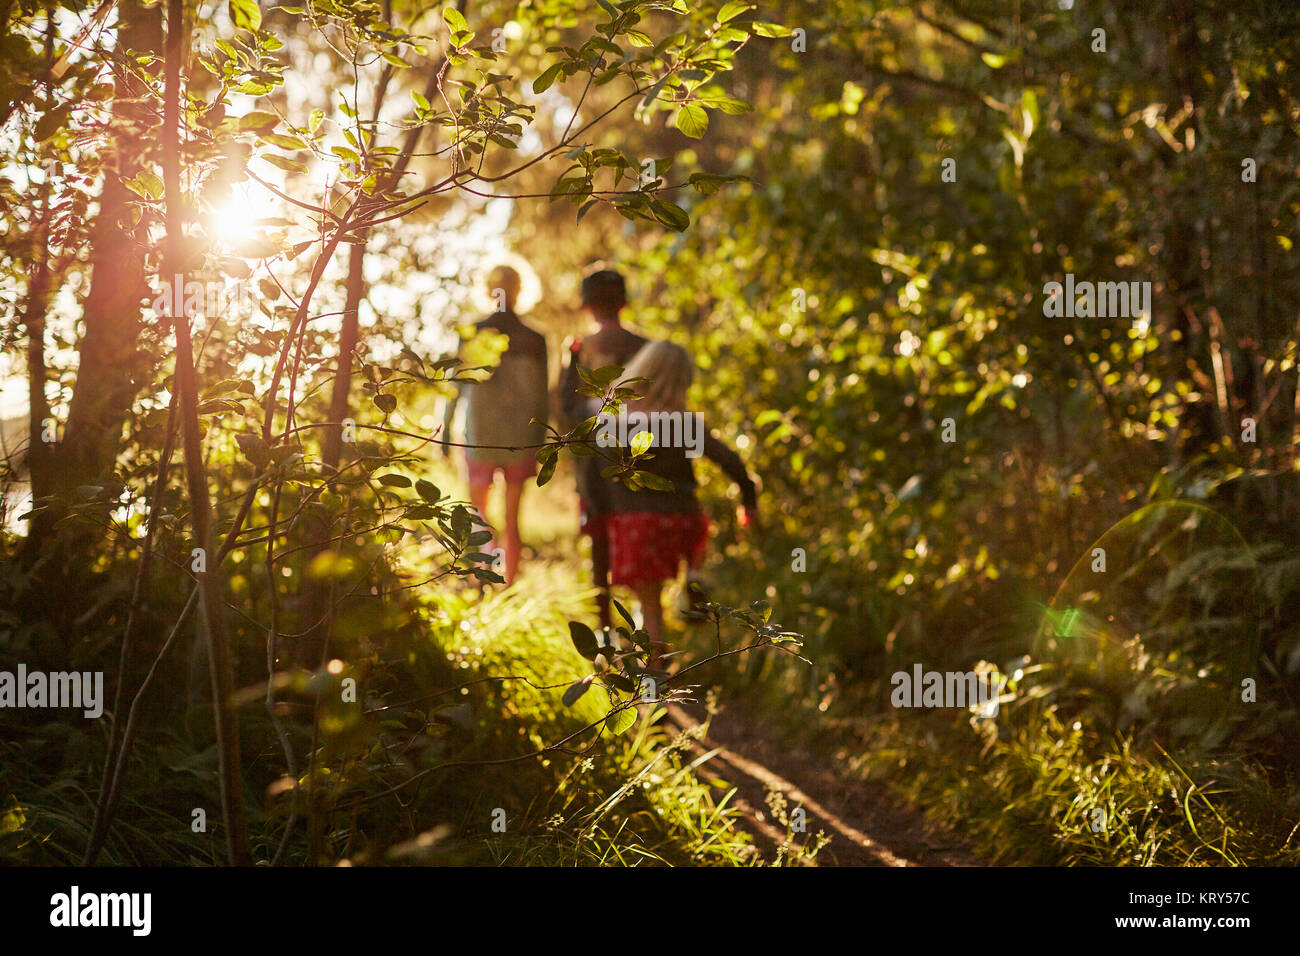 Children walking by trees - Stock Image